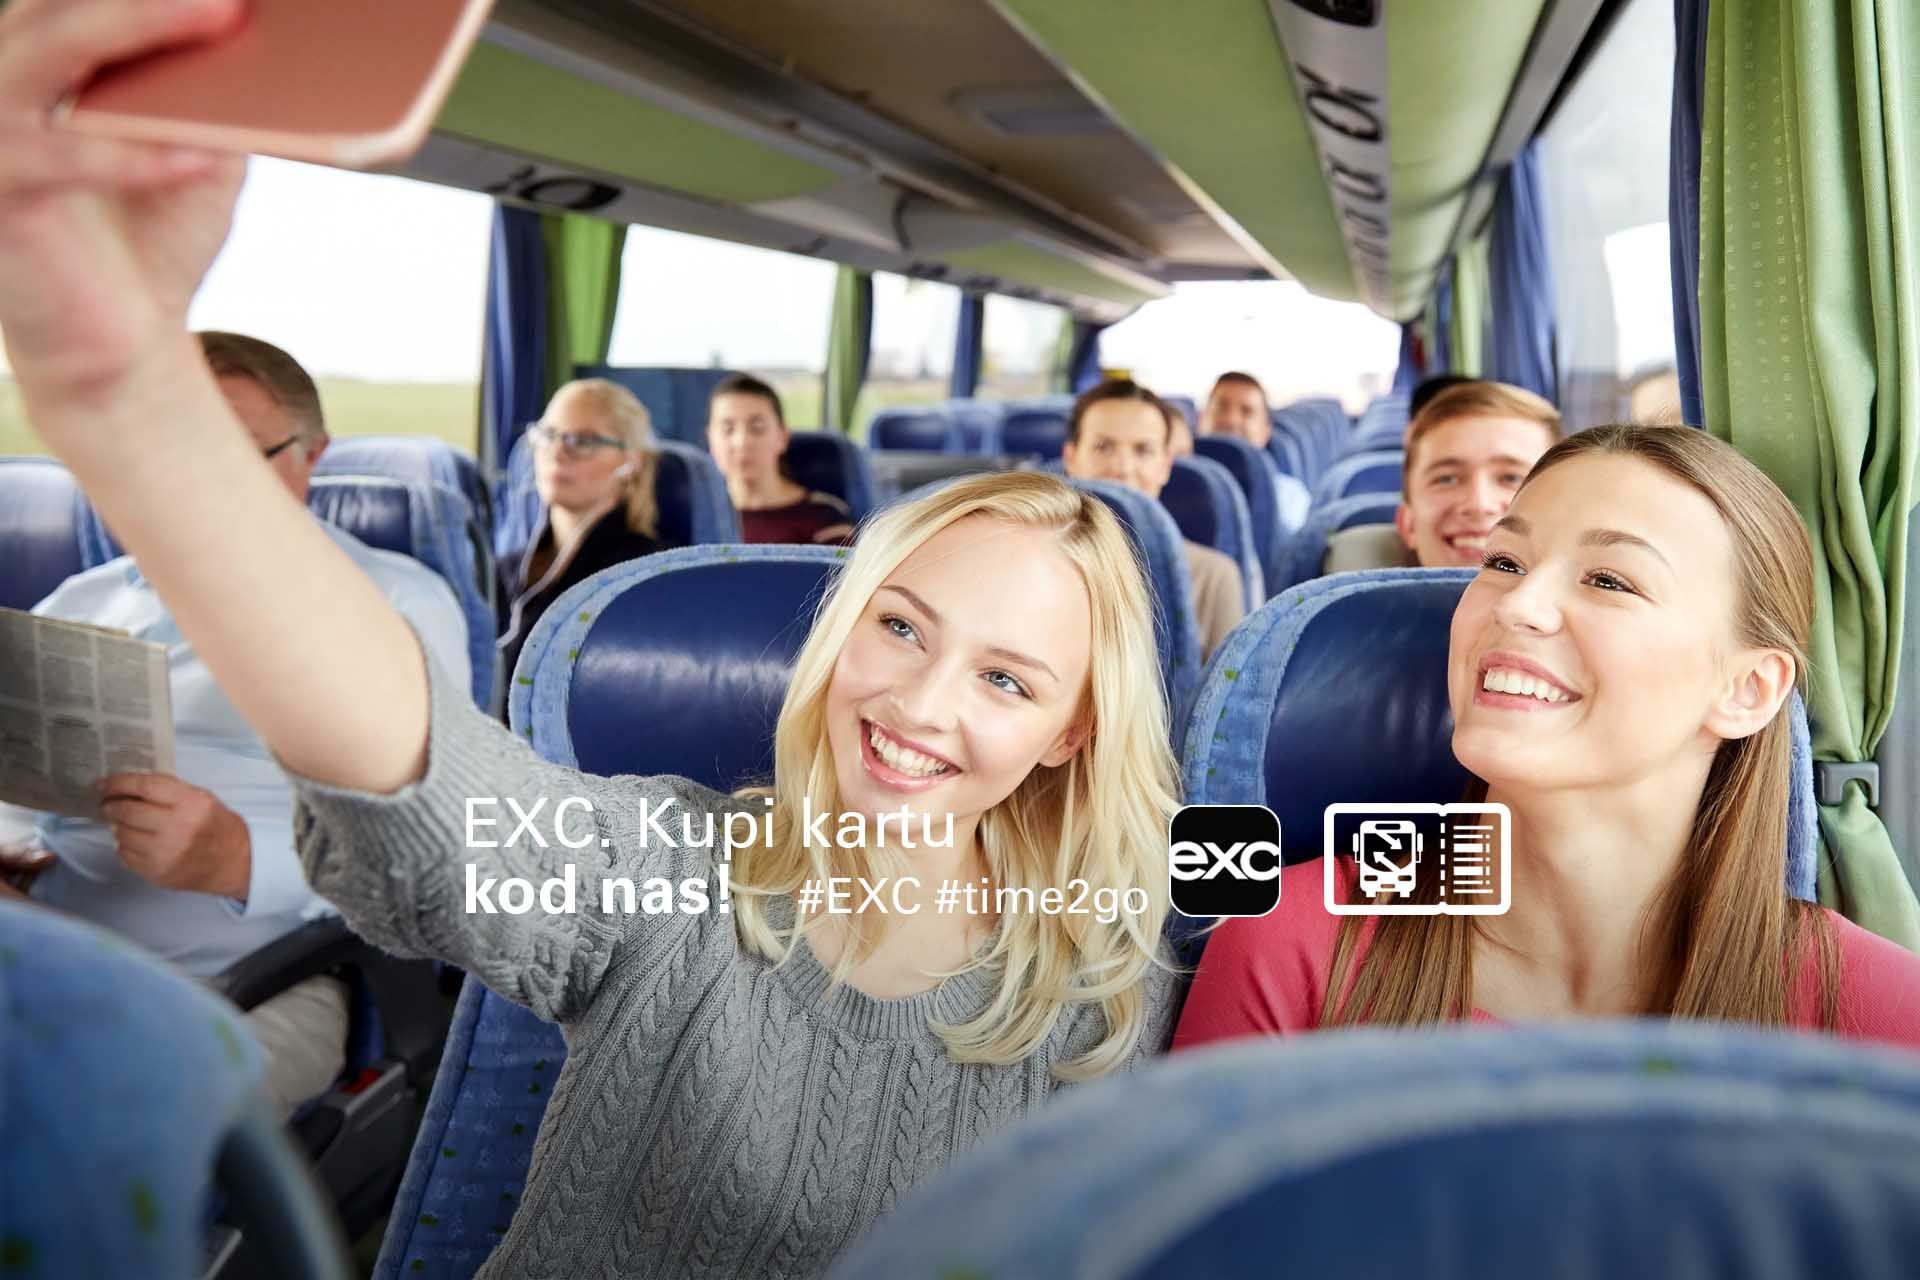 EXC. FlixBus. #time2go #1